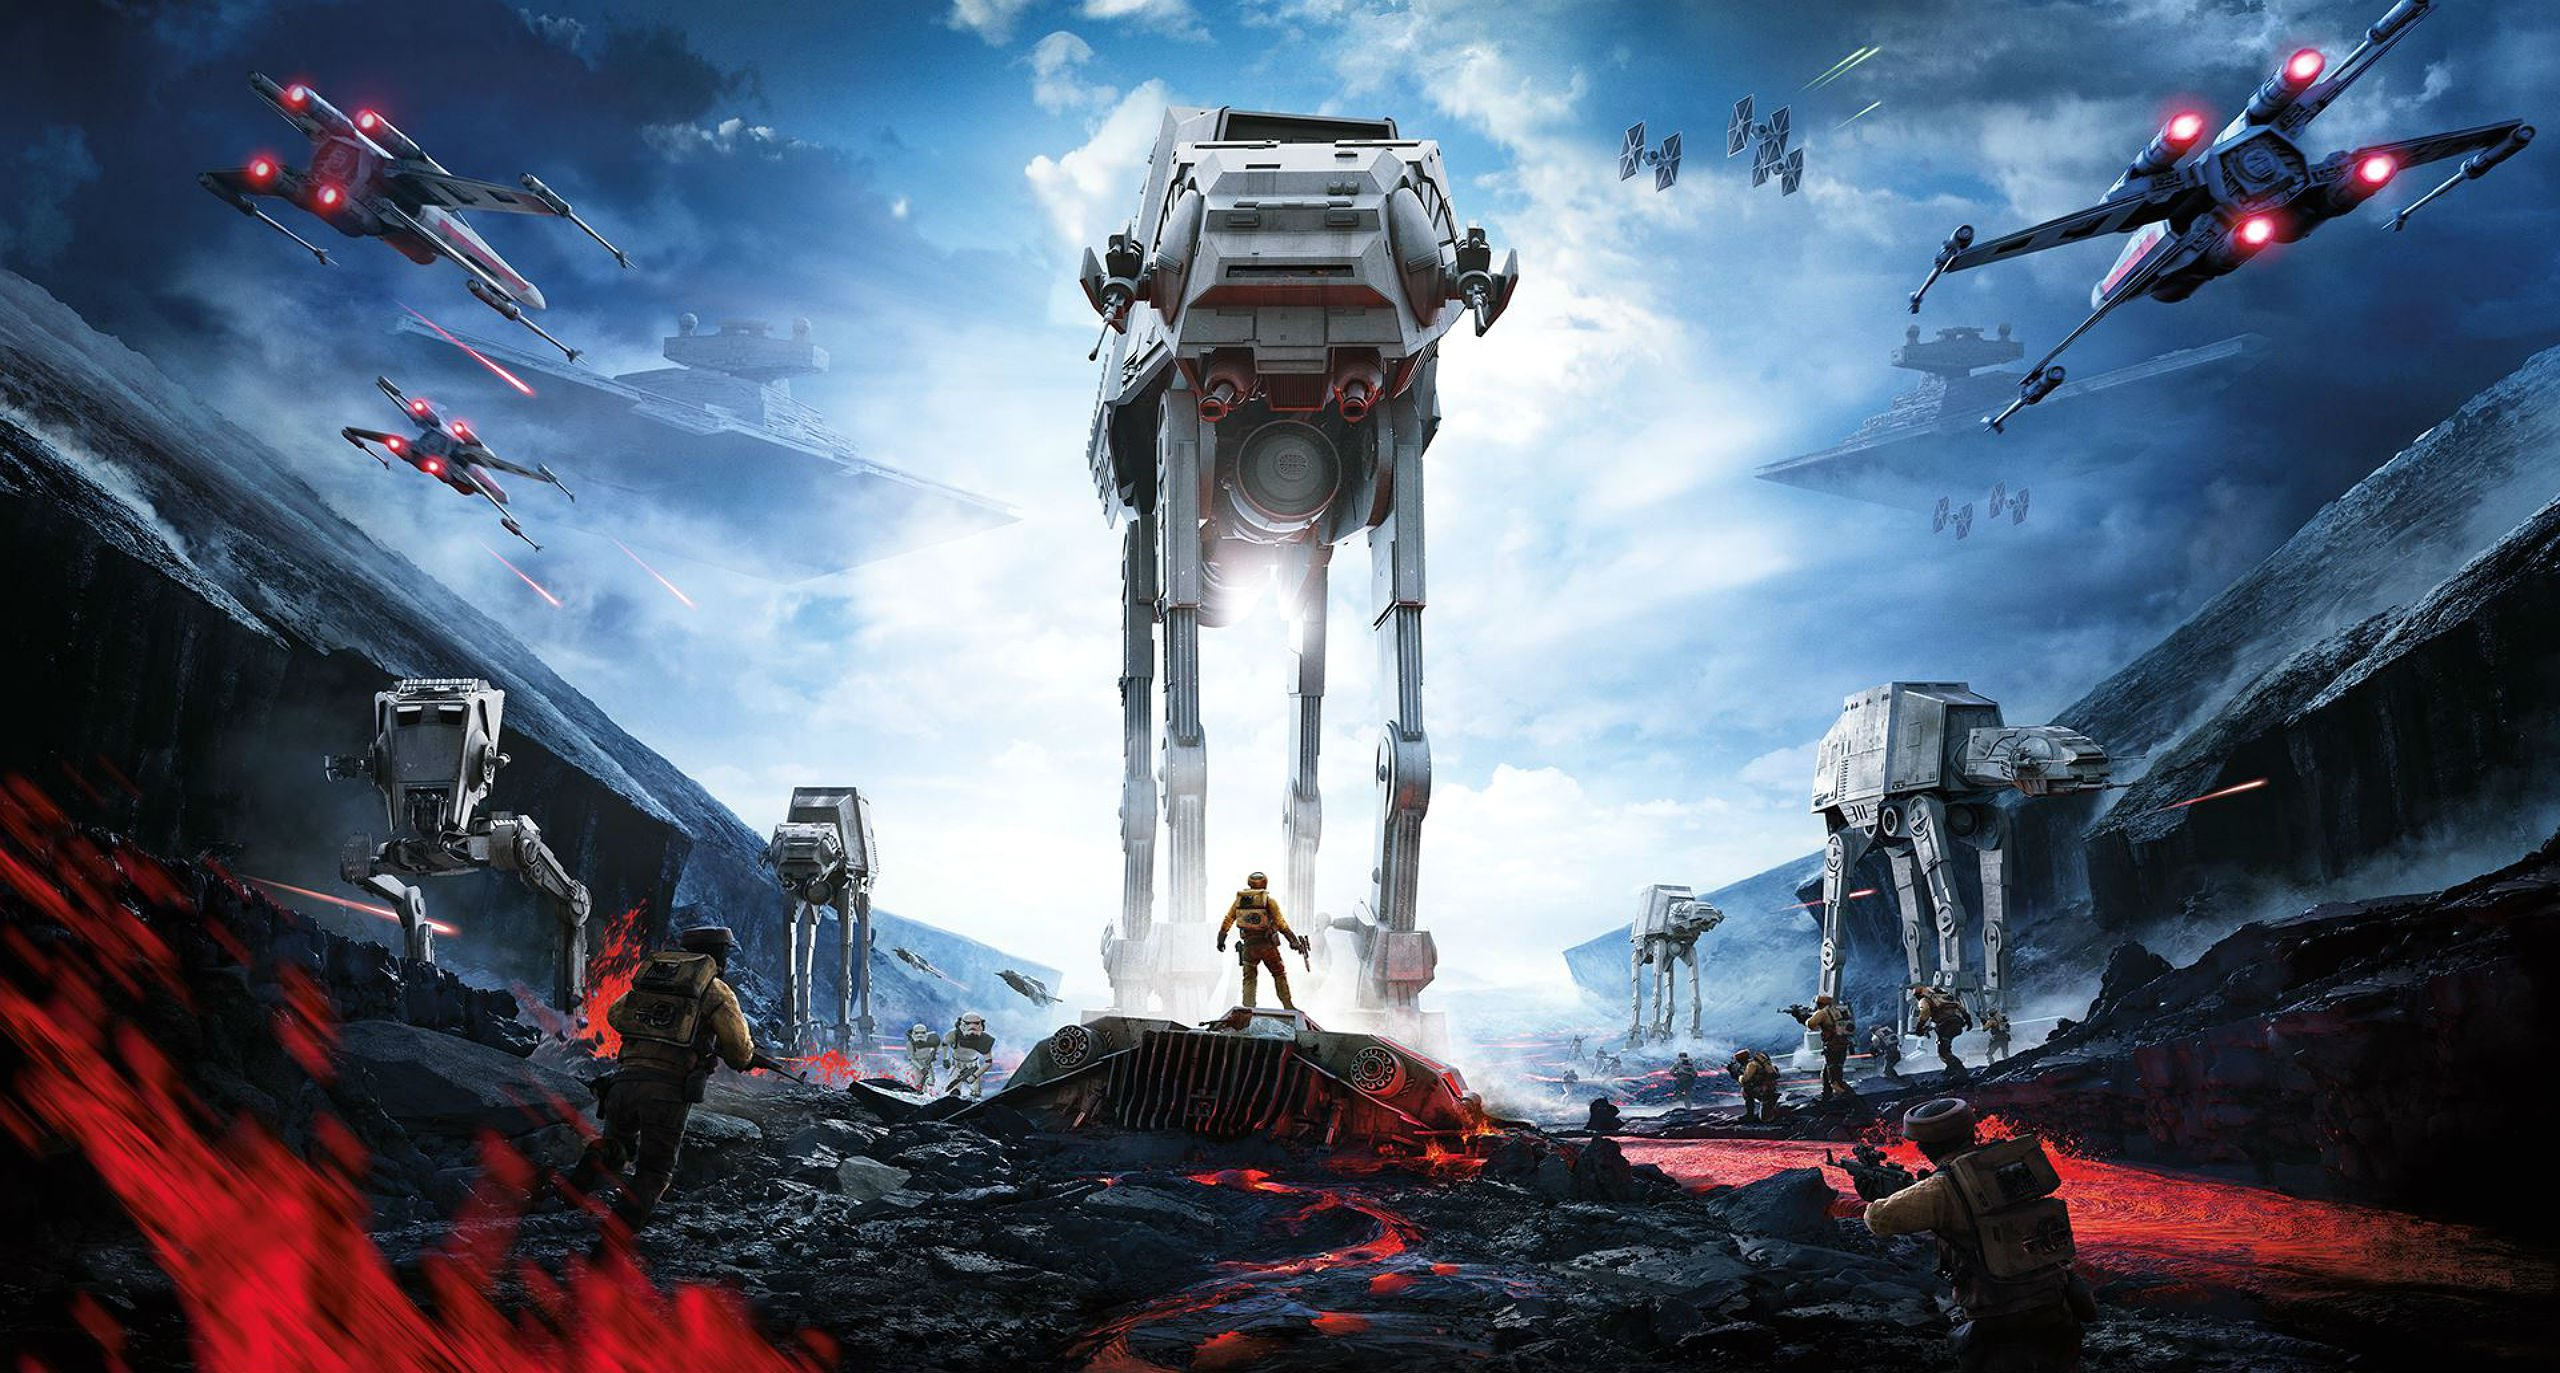 More Star Wars Games Announced by EA